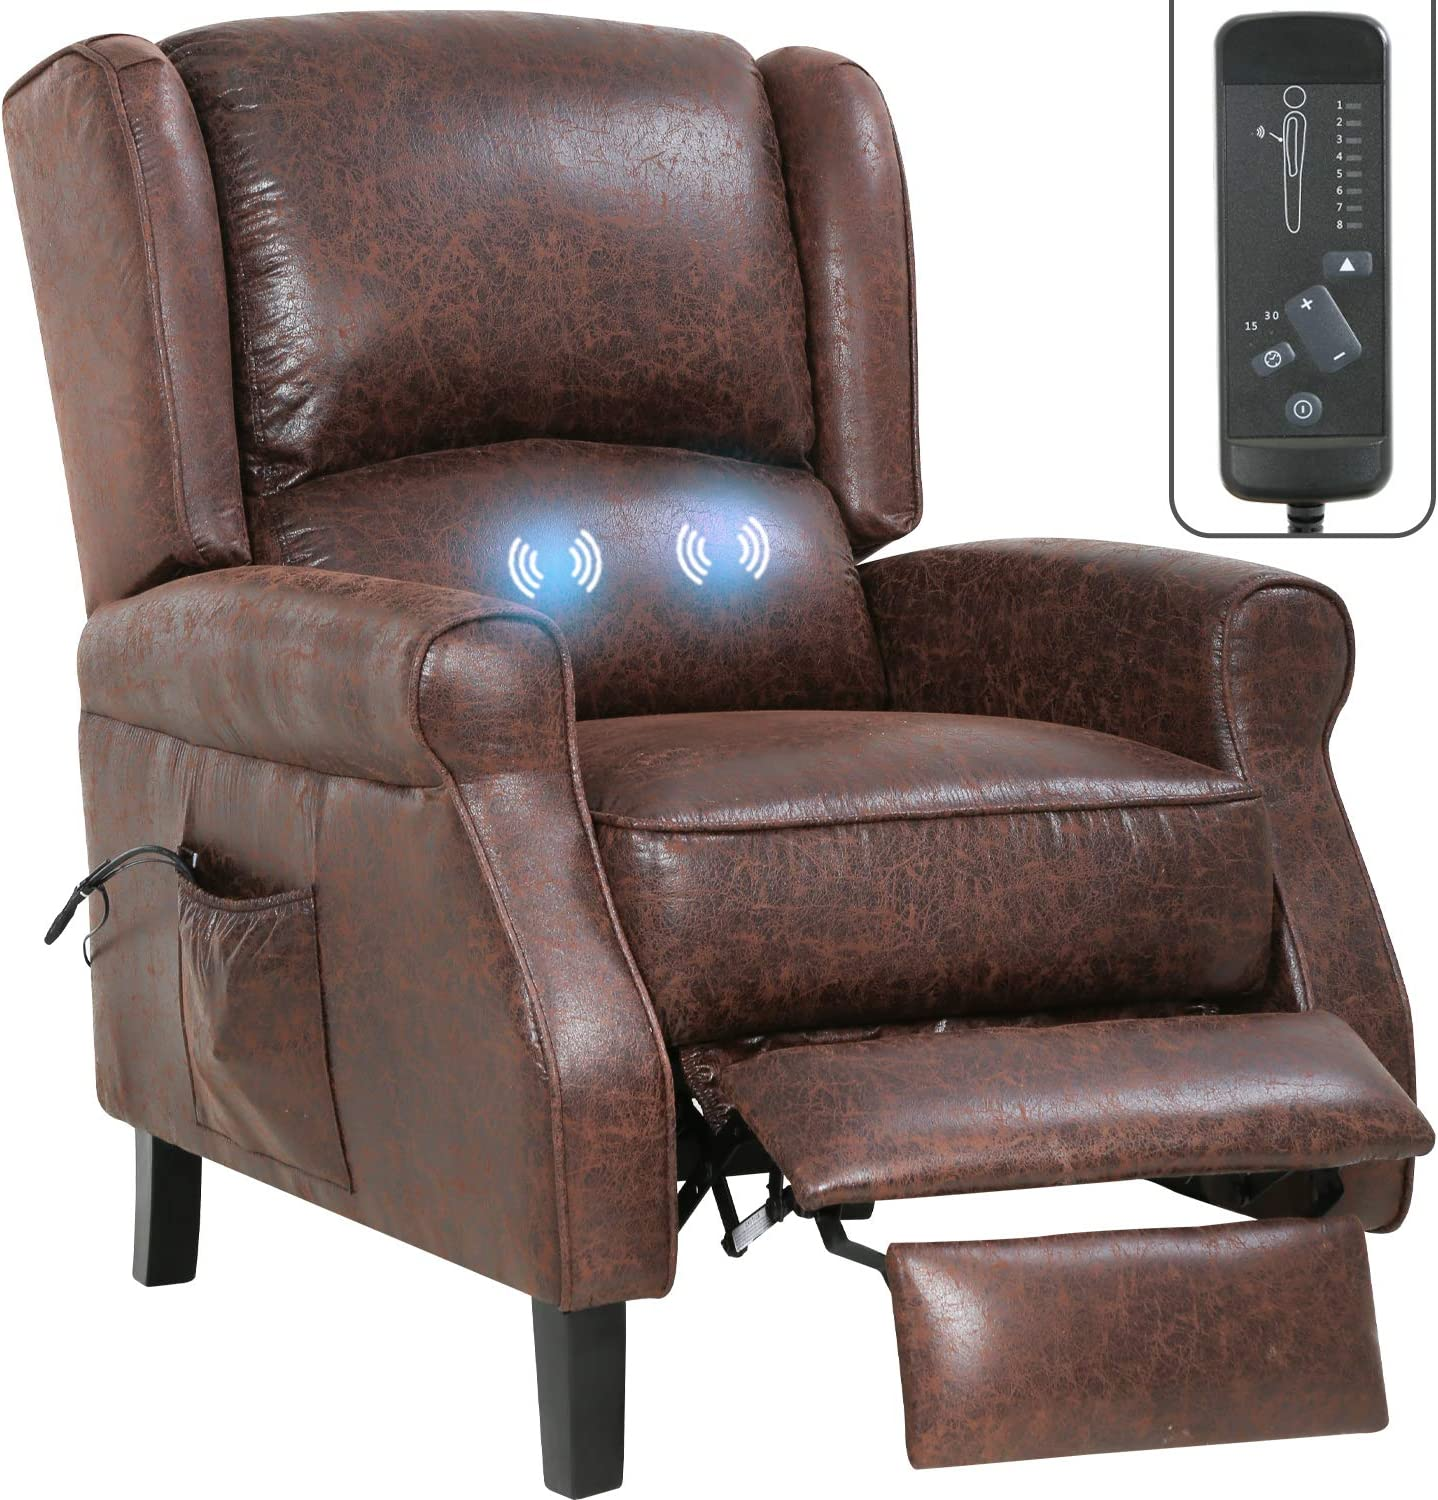 Recliner Chair for Living Room Massage Recliner Sofa Reading Chair Winback Single Sofa Reclining Chair Home Theater Seating Modern Easy Lounge with Fabric (Brown)